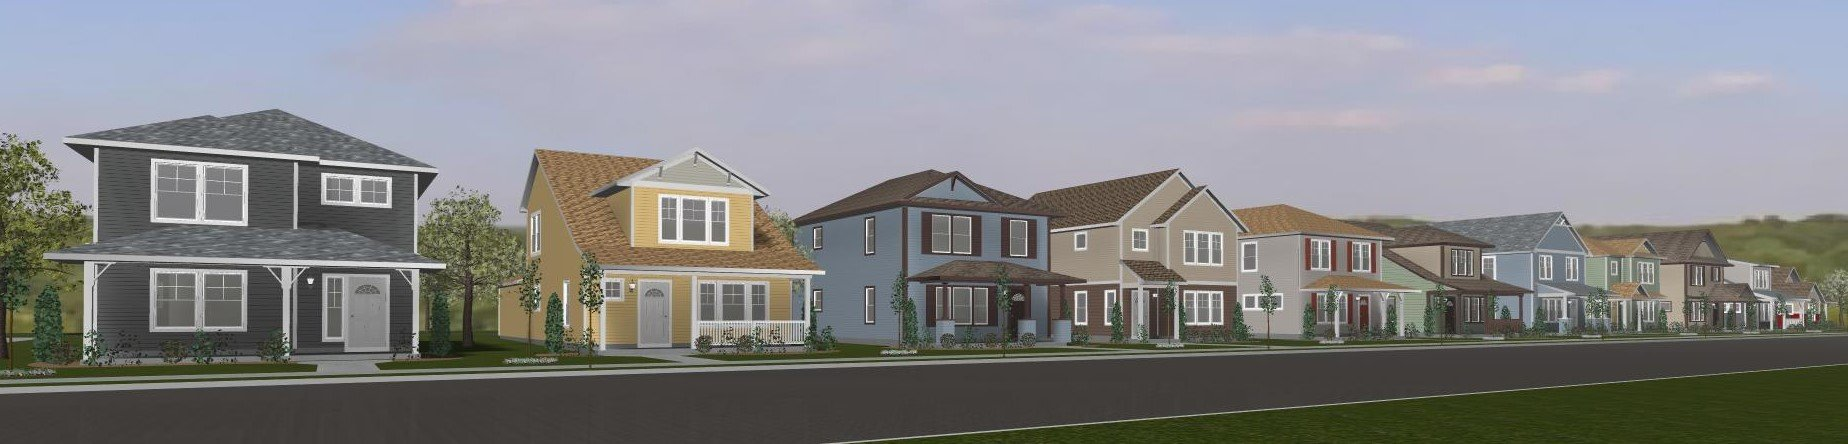 Willow Reserve Project Rendering - street view